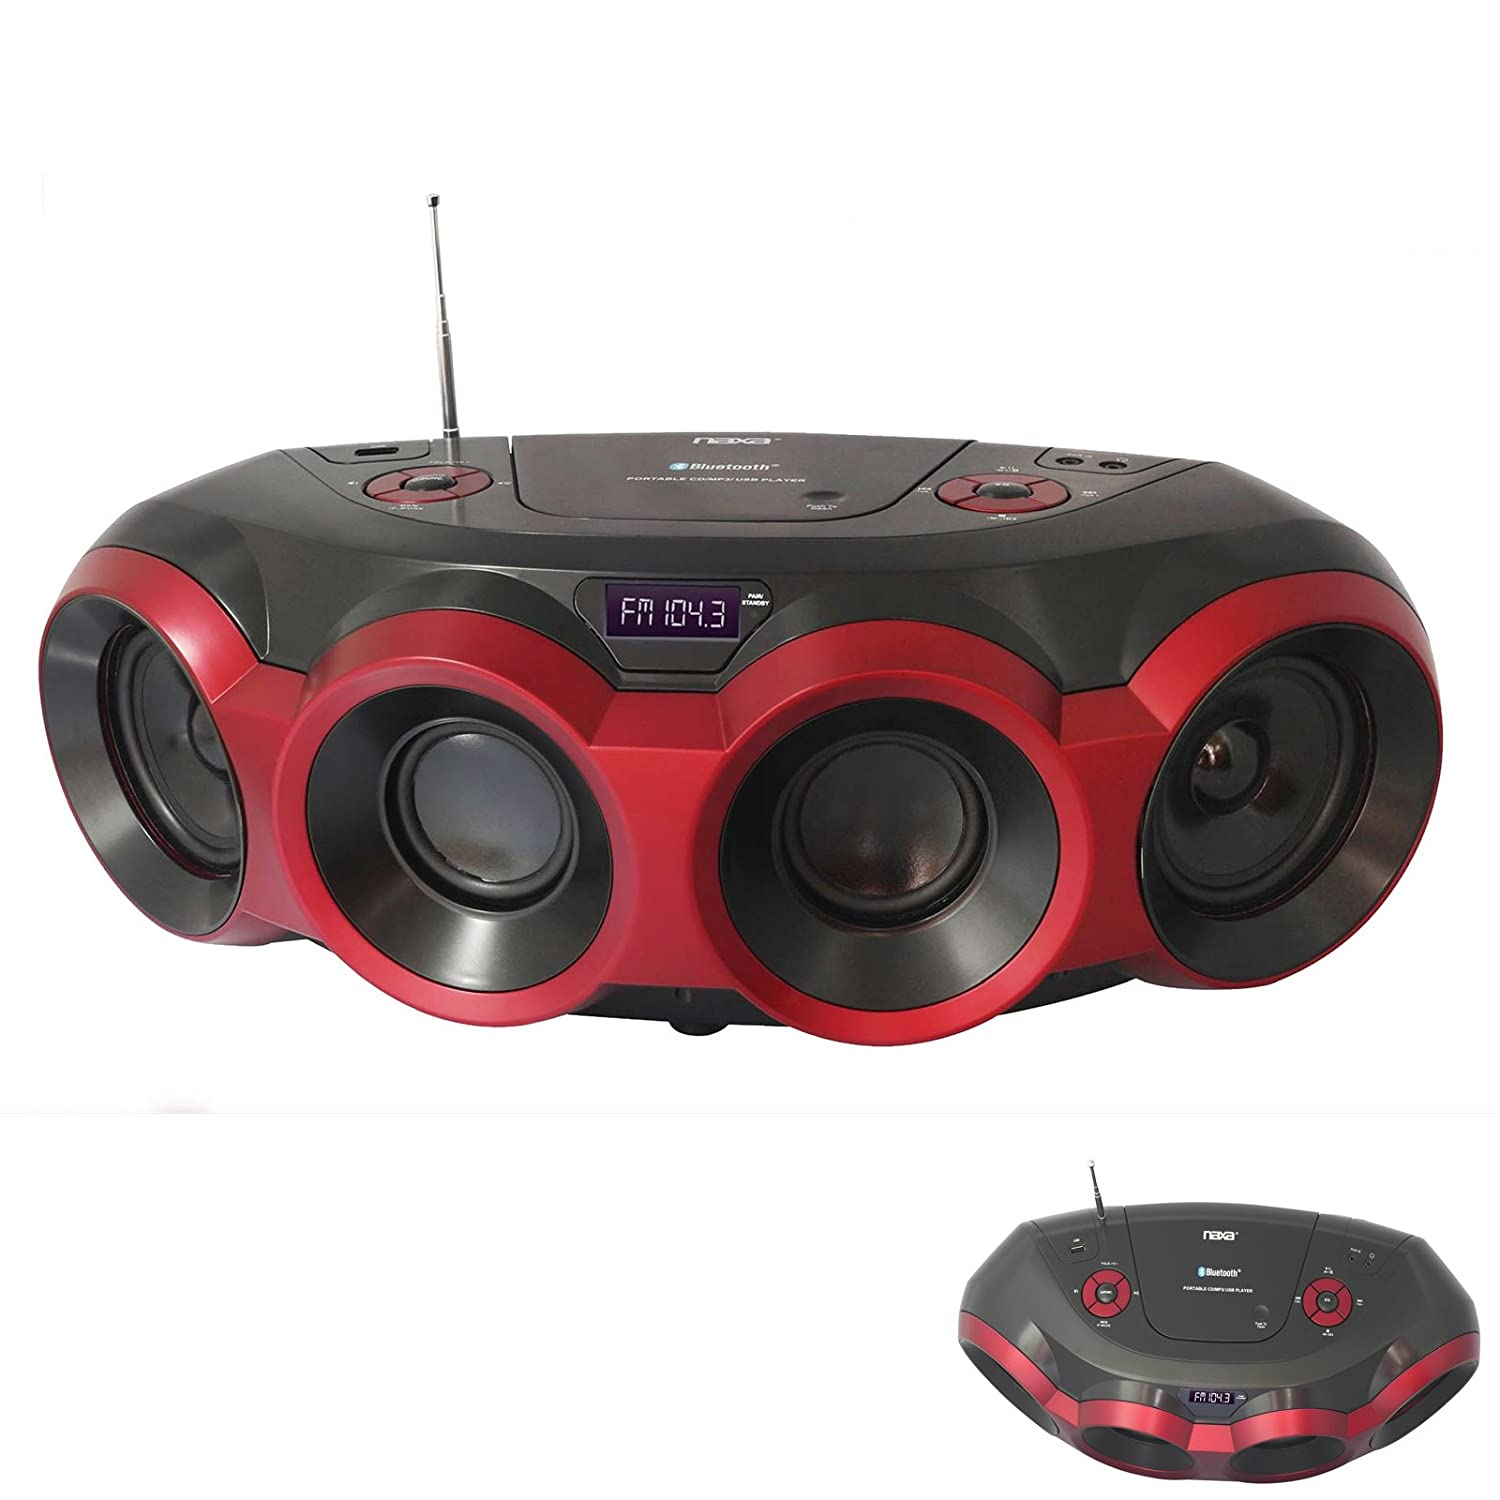 9high Performance Portable Mp3 Supersonic Speaker With Usb Sd Aux And Multi Band Radio Led Display Recording Function Best Buy furthermore 231360692297 together with 46354349 besides Home Stereo Cd Player Ebay likewise 231880593017. on naxa portable cd player